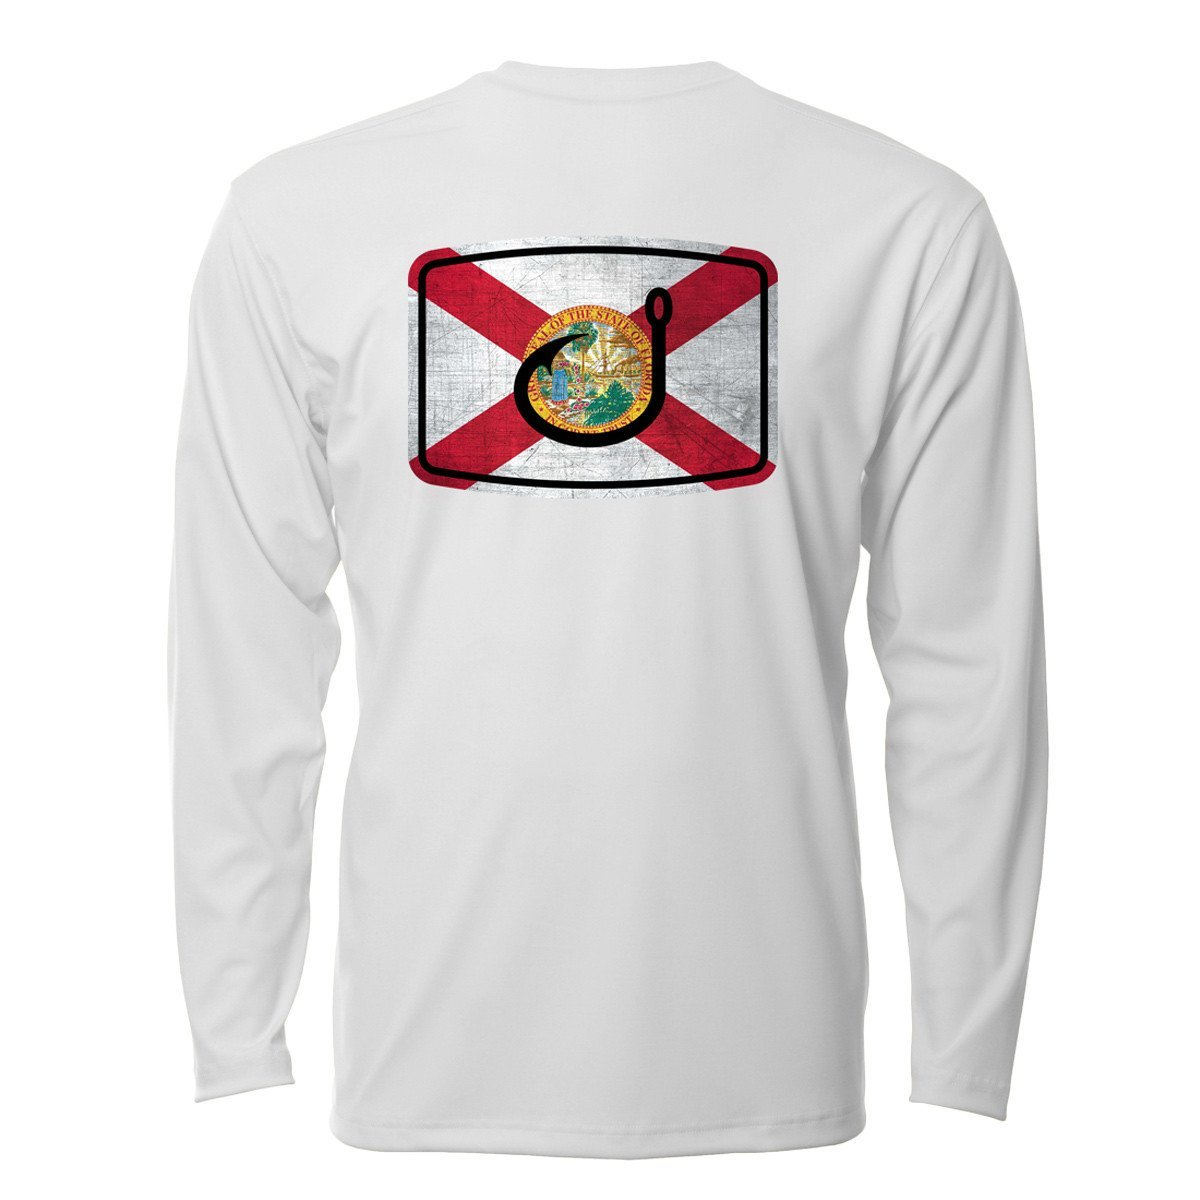 Avid Floridan AVIDry long sleeve shirt-white